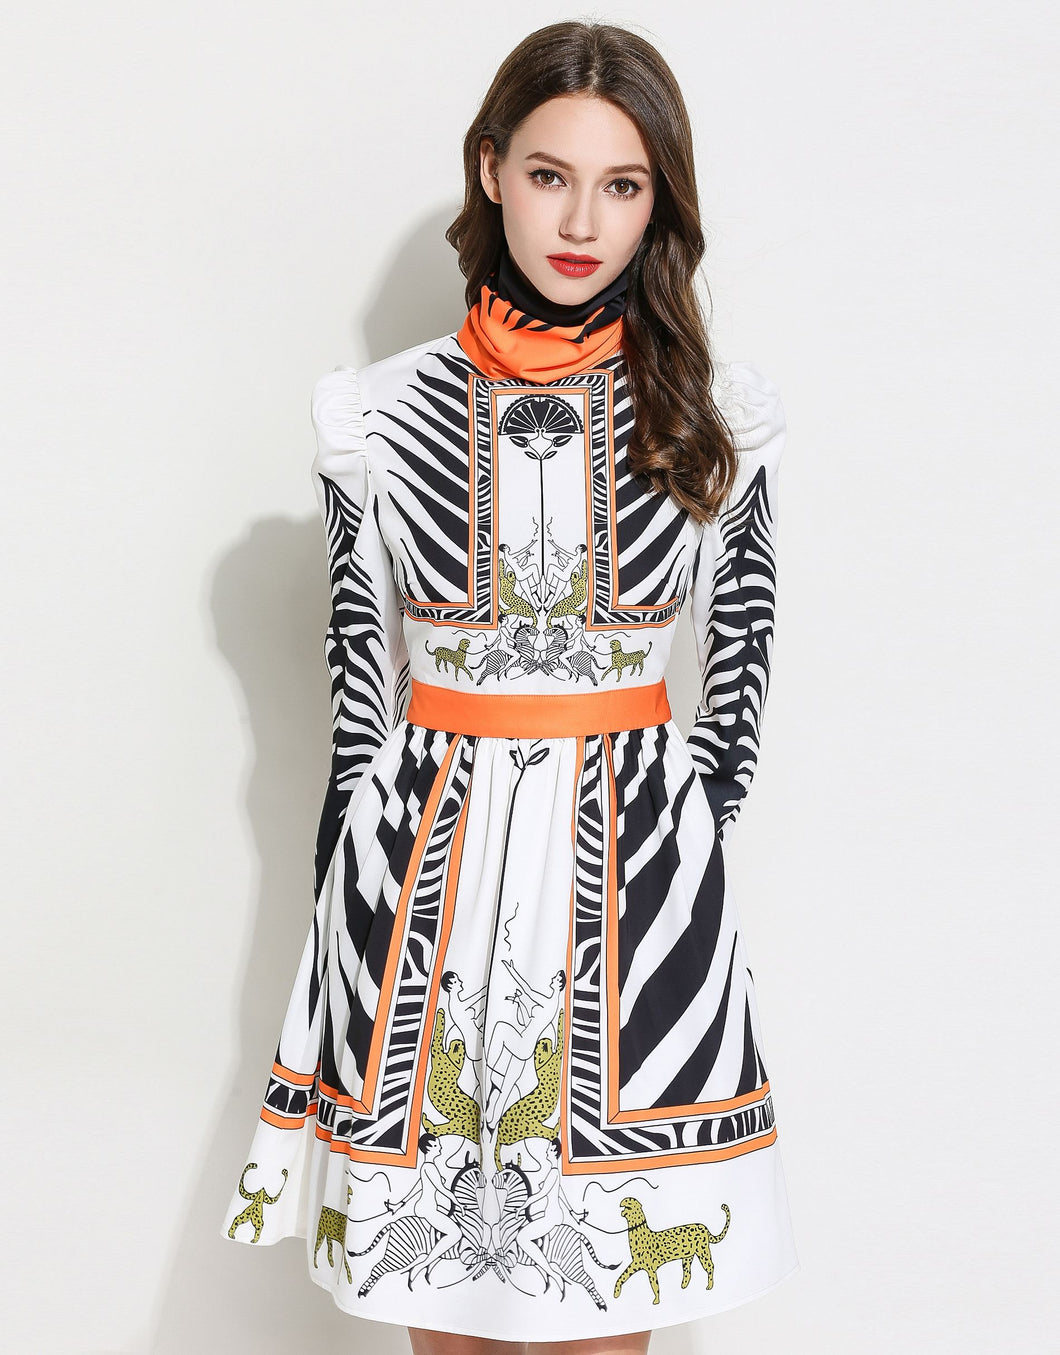 Comino Couture Animal Kingdom Dress *WAS £145*